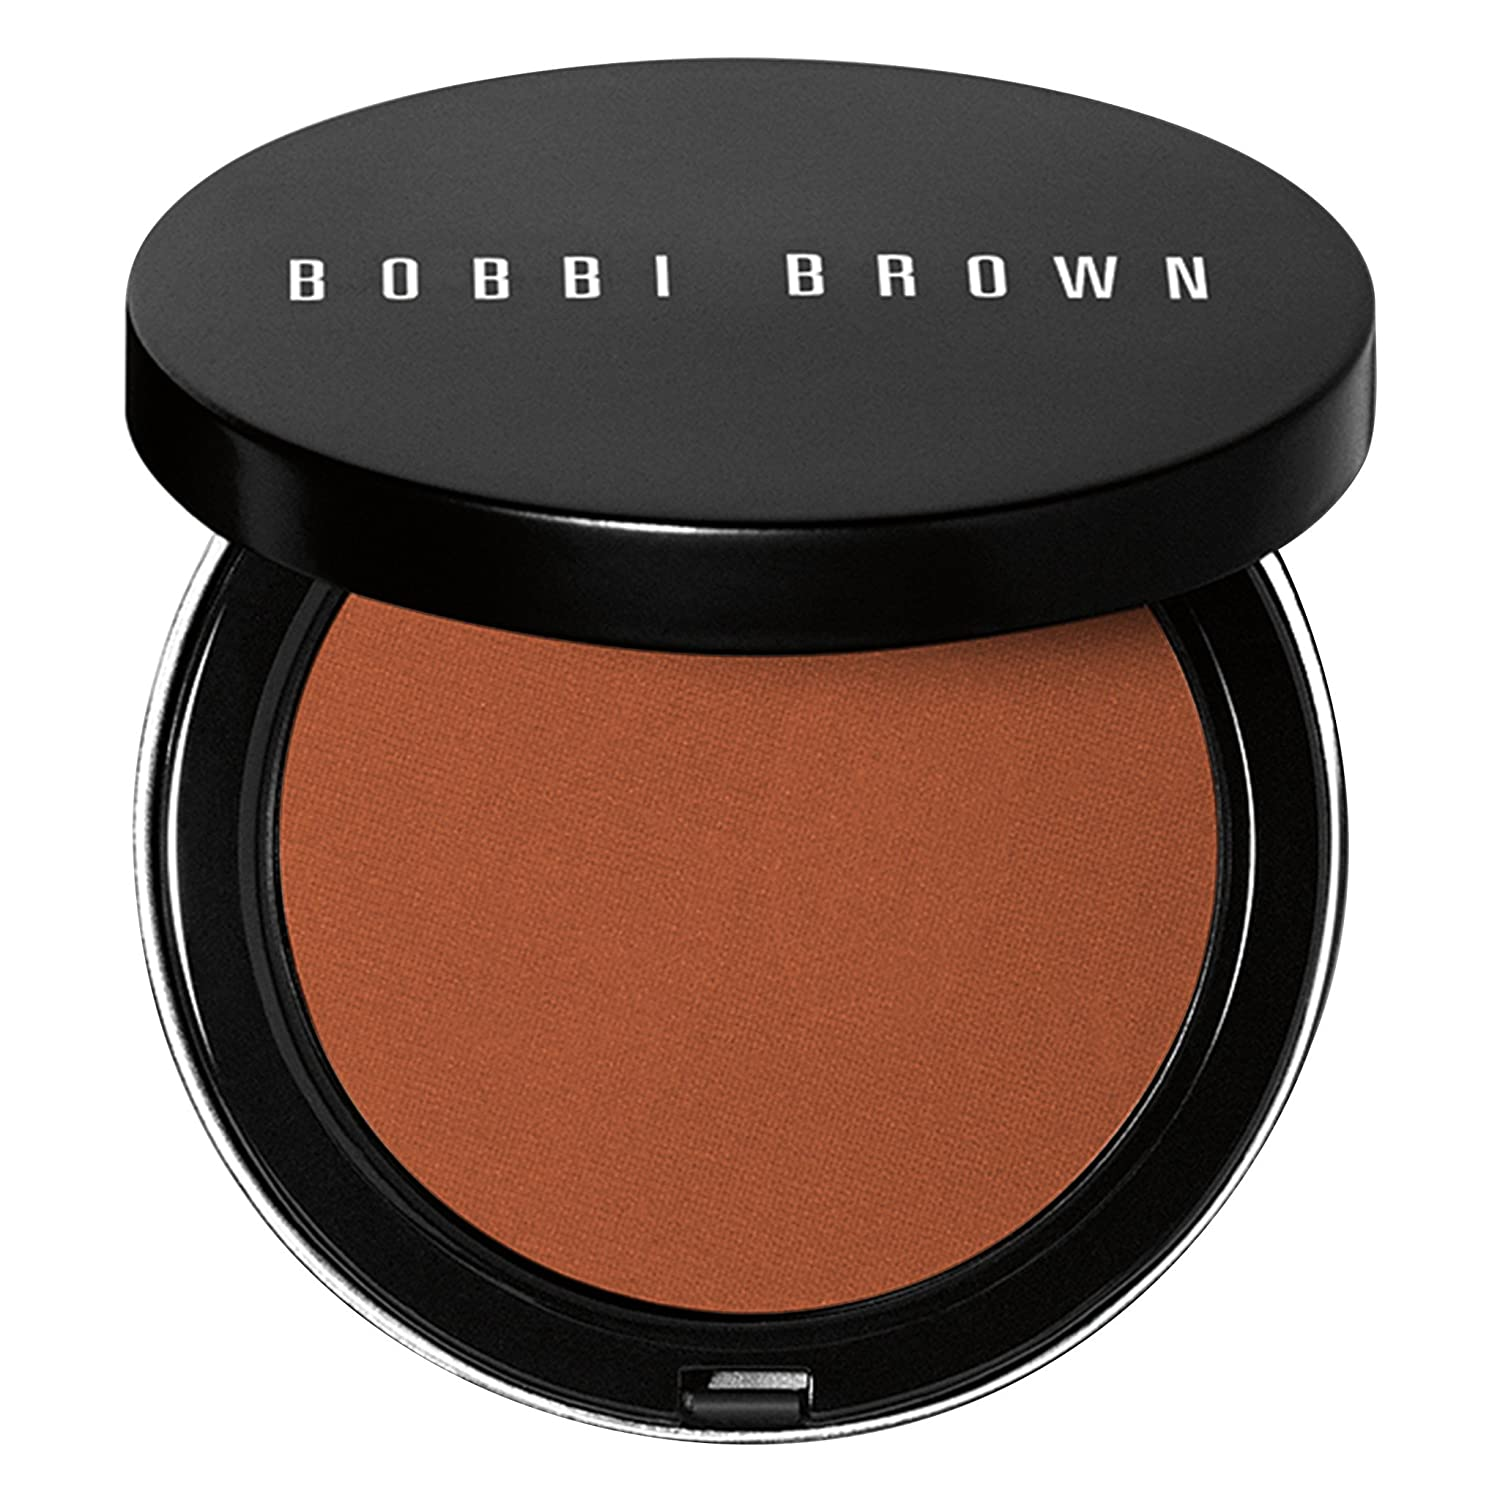 Excelente polvo bronceador Bobbi Brown de color oscuro.